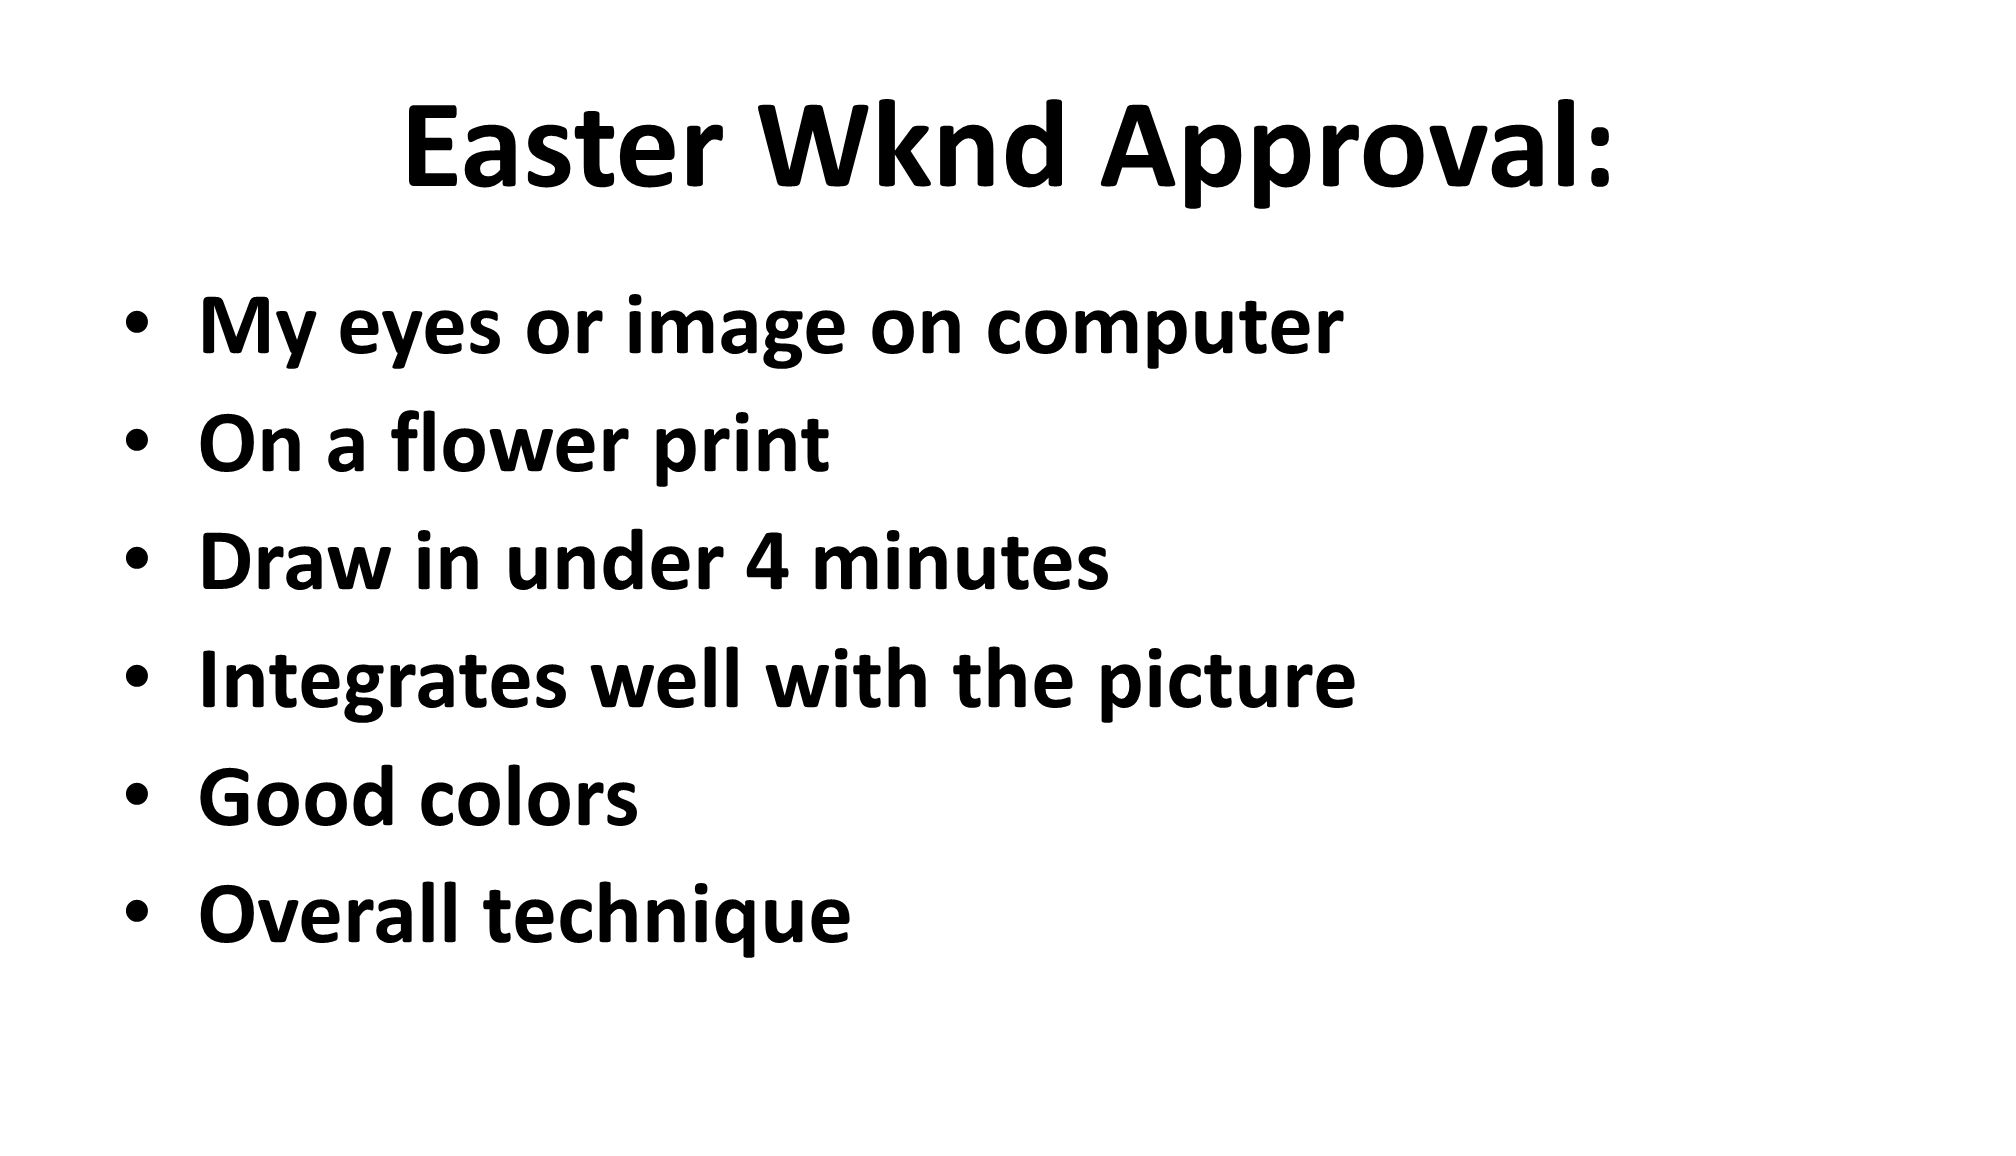 Easter Wknd Approval: My eyes or image on computer On a flower print Draw in under 4 minutes Integrates well with the picture Good colors Overall technique